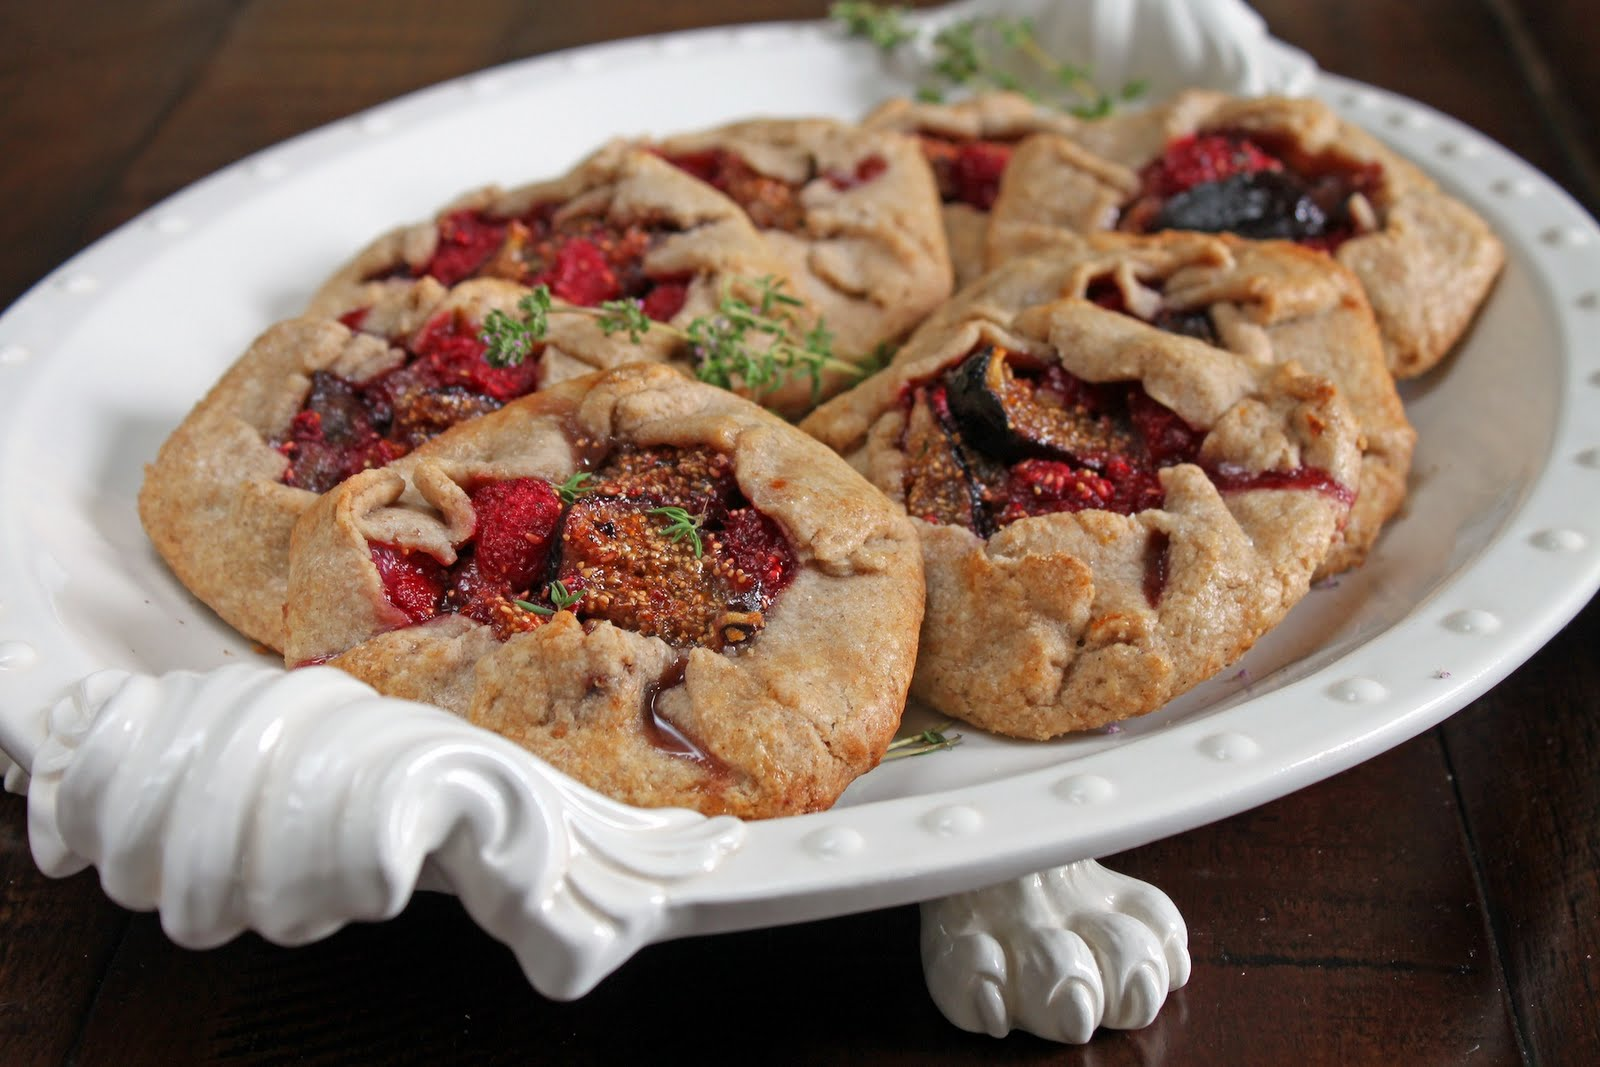 ... crostata rhubarb and raspberry crostata rhubarb and raspberry crostata